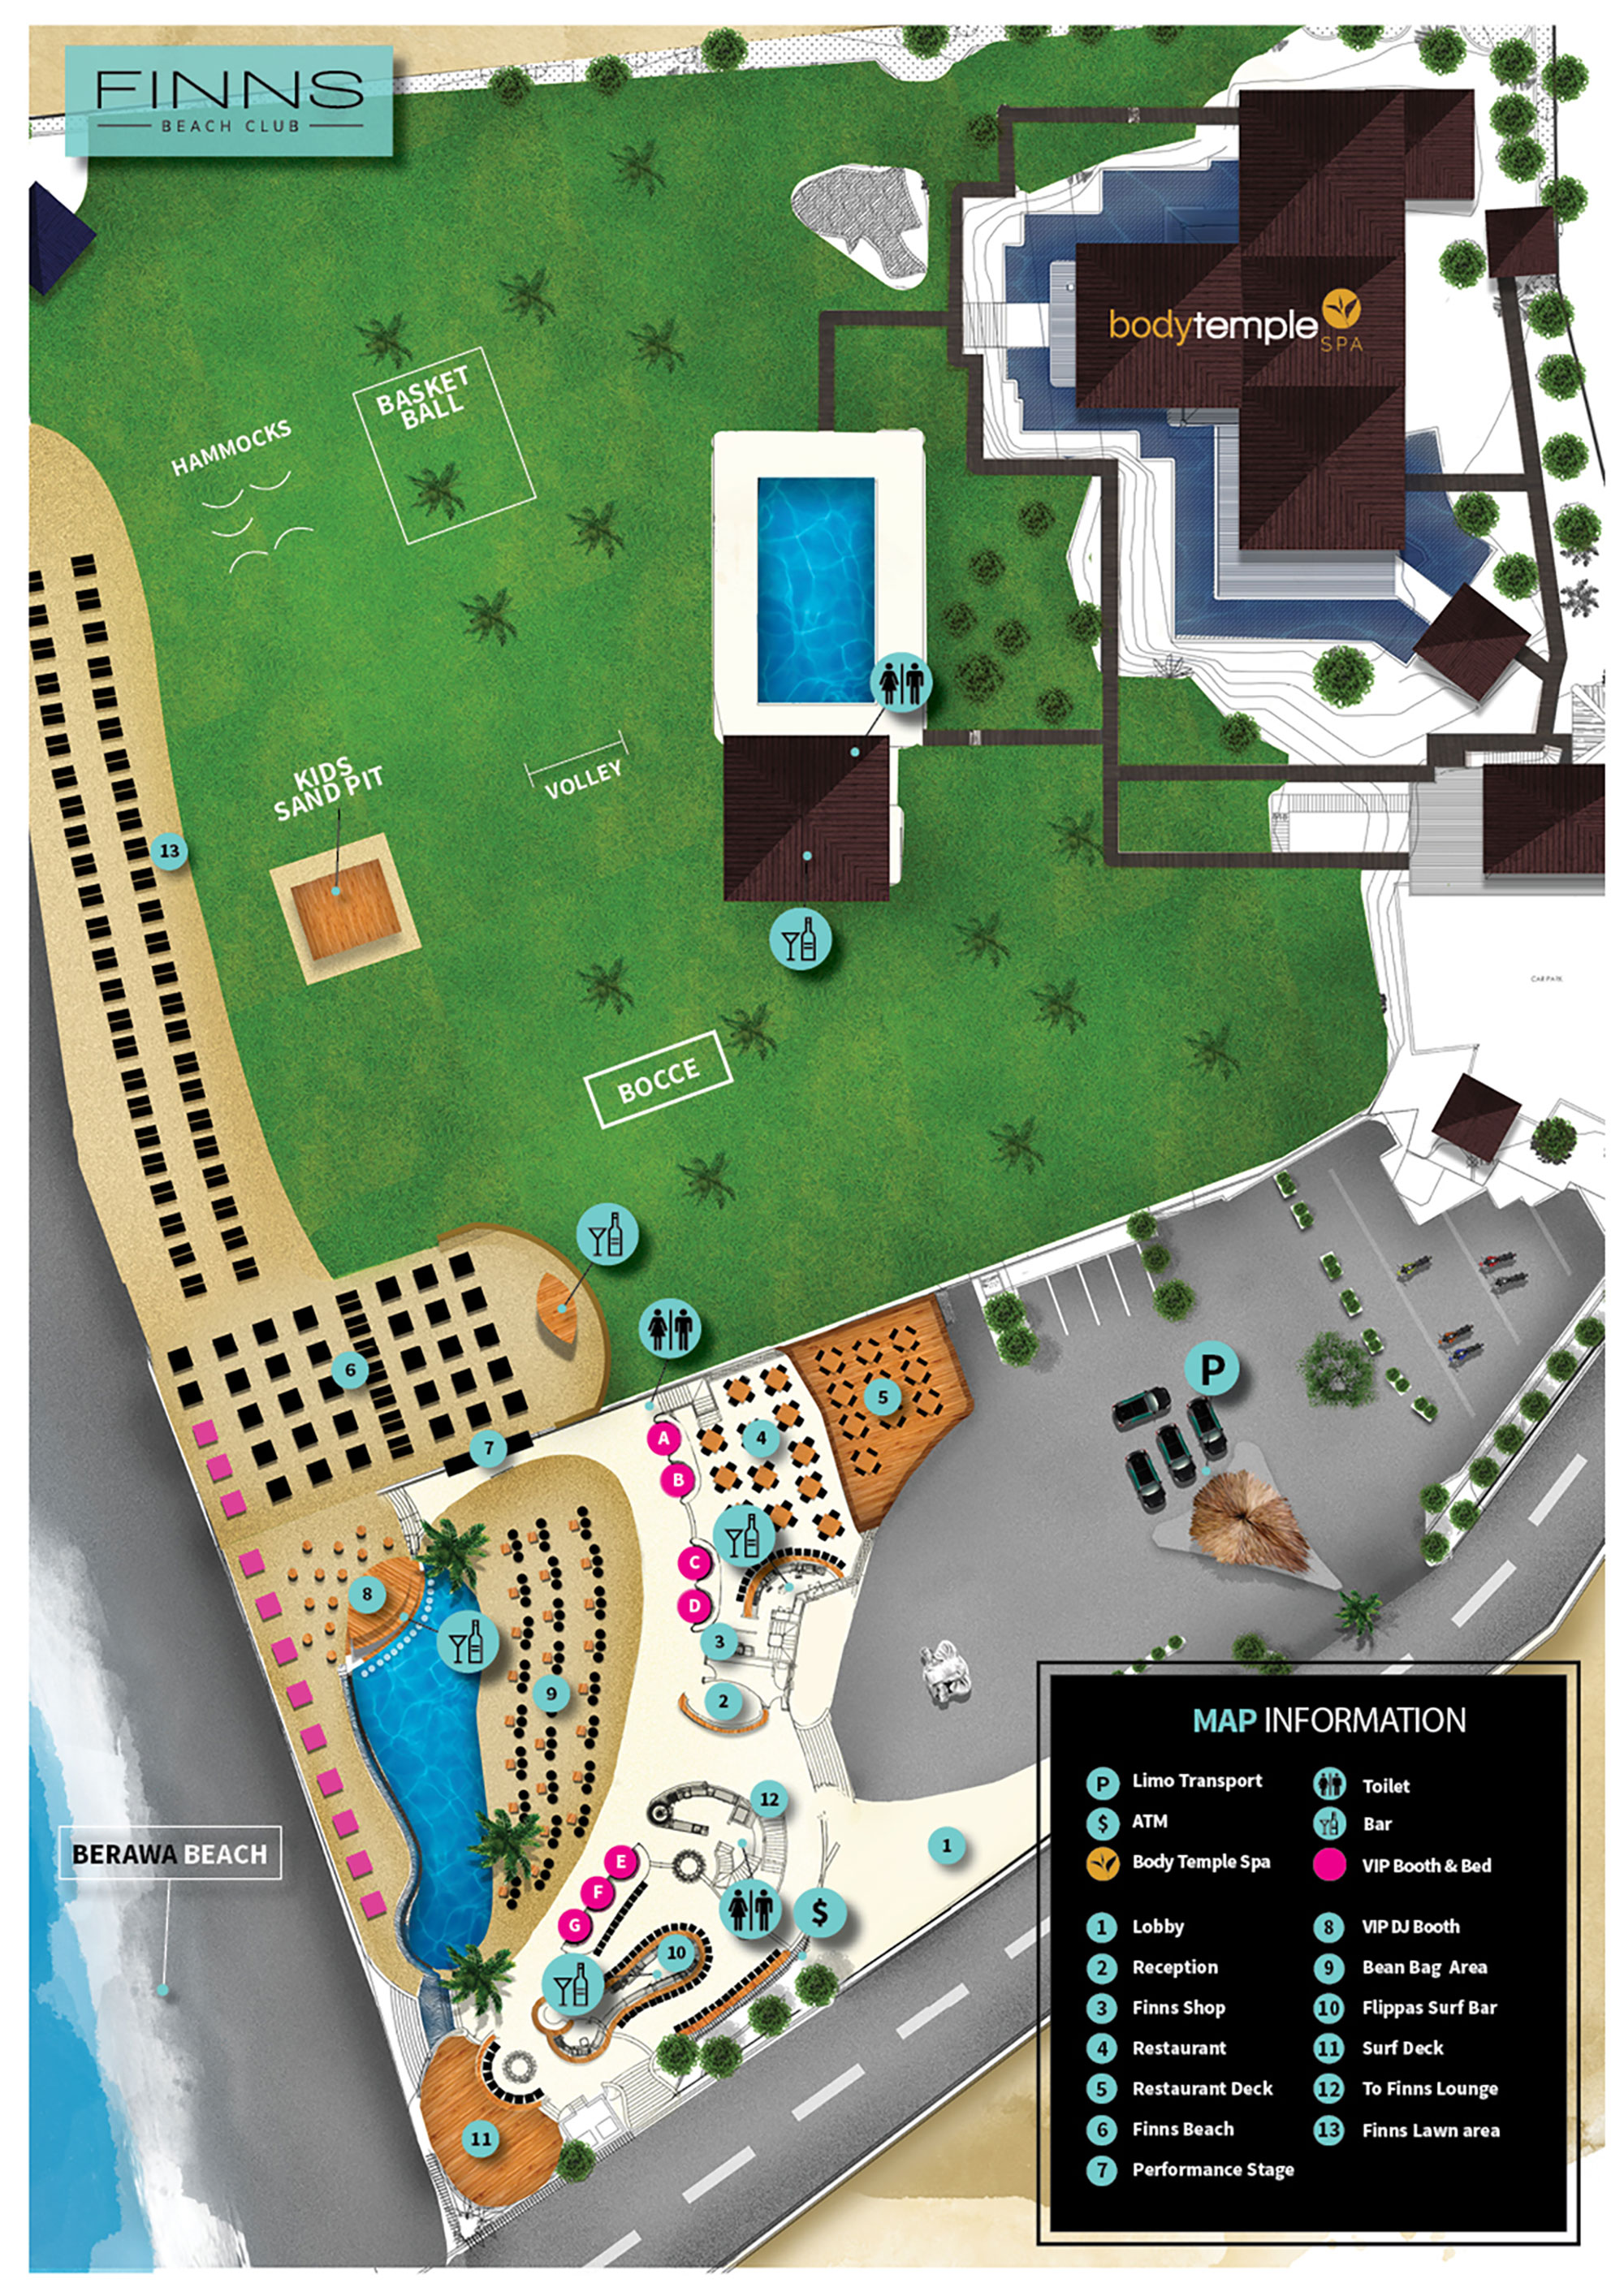 20170705-site-map